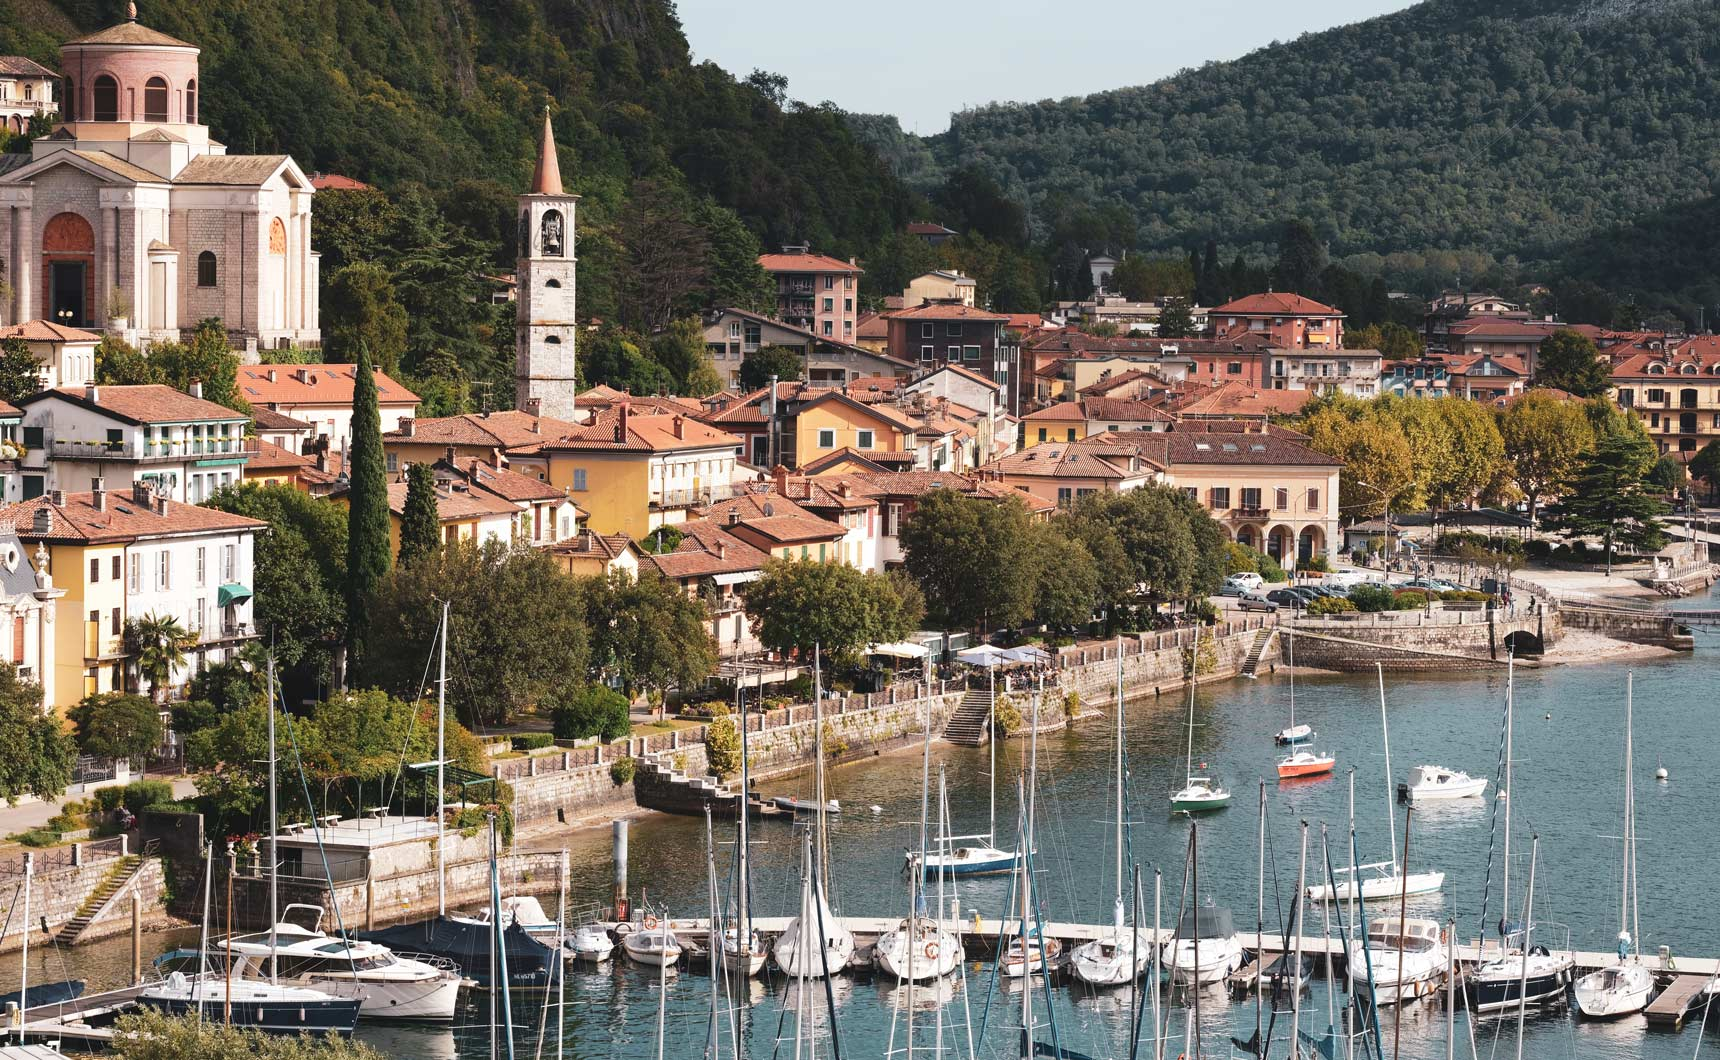 Laveno Premium Real Estate: Laveno